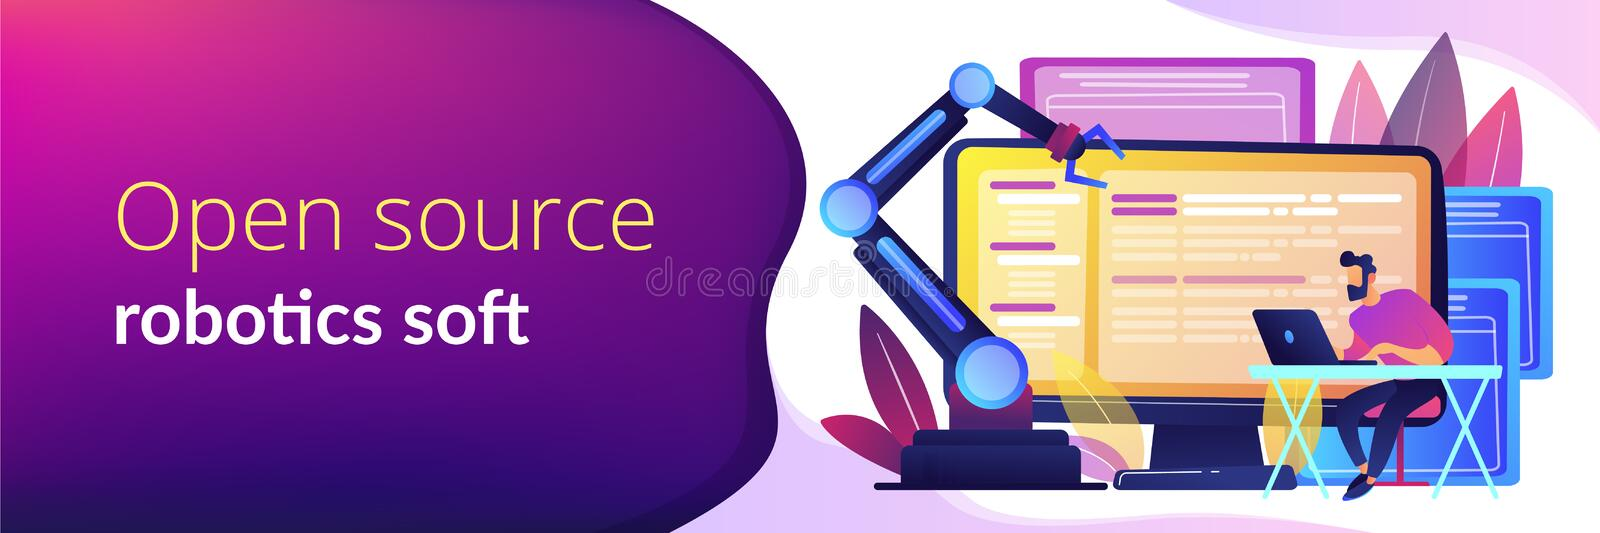 Open automation architecture concept banner header. Open automation architecture, open source robotics soft, free development concept. Header or footer banner royalty free illustration